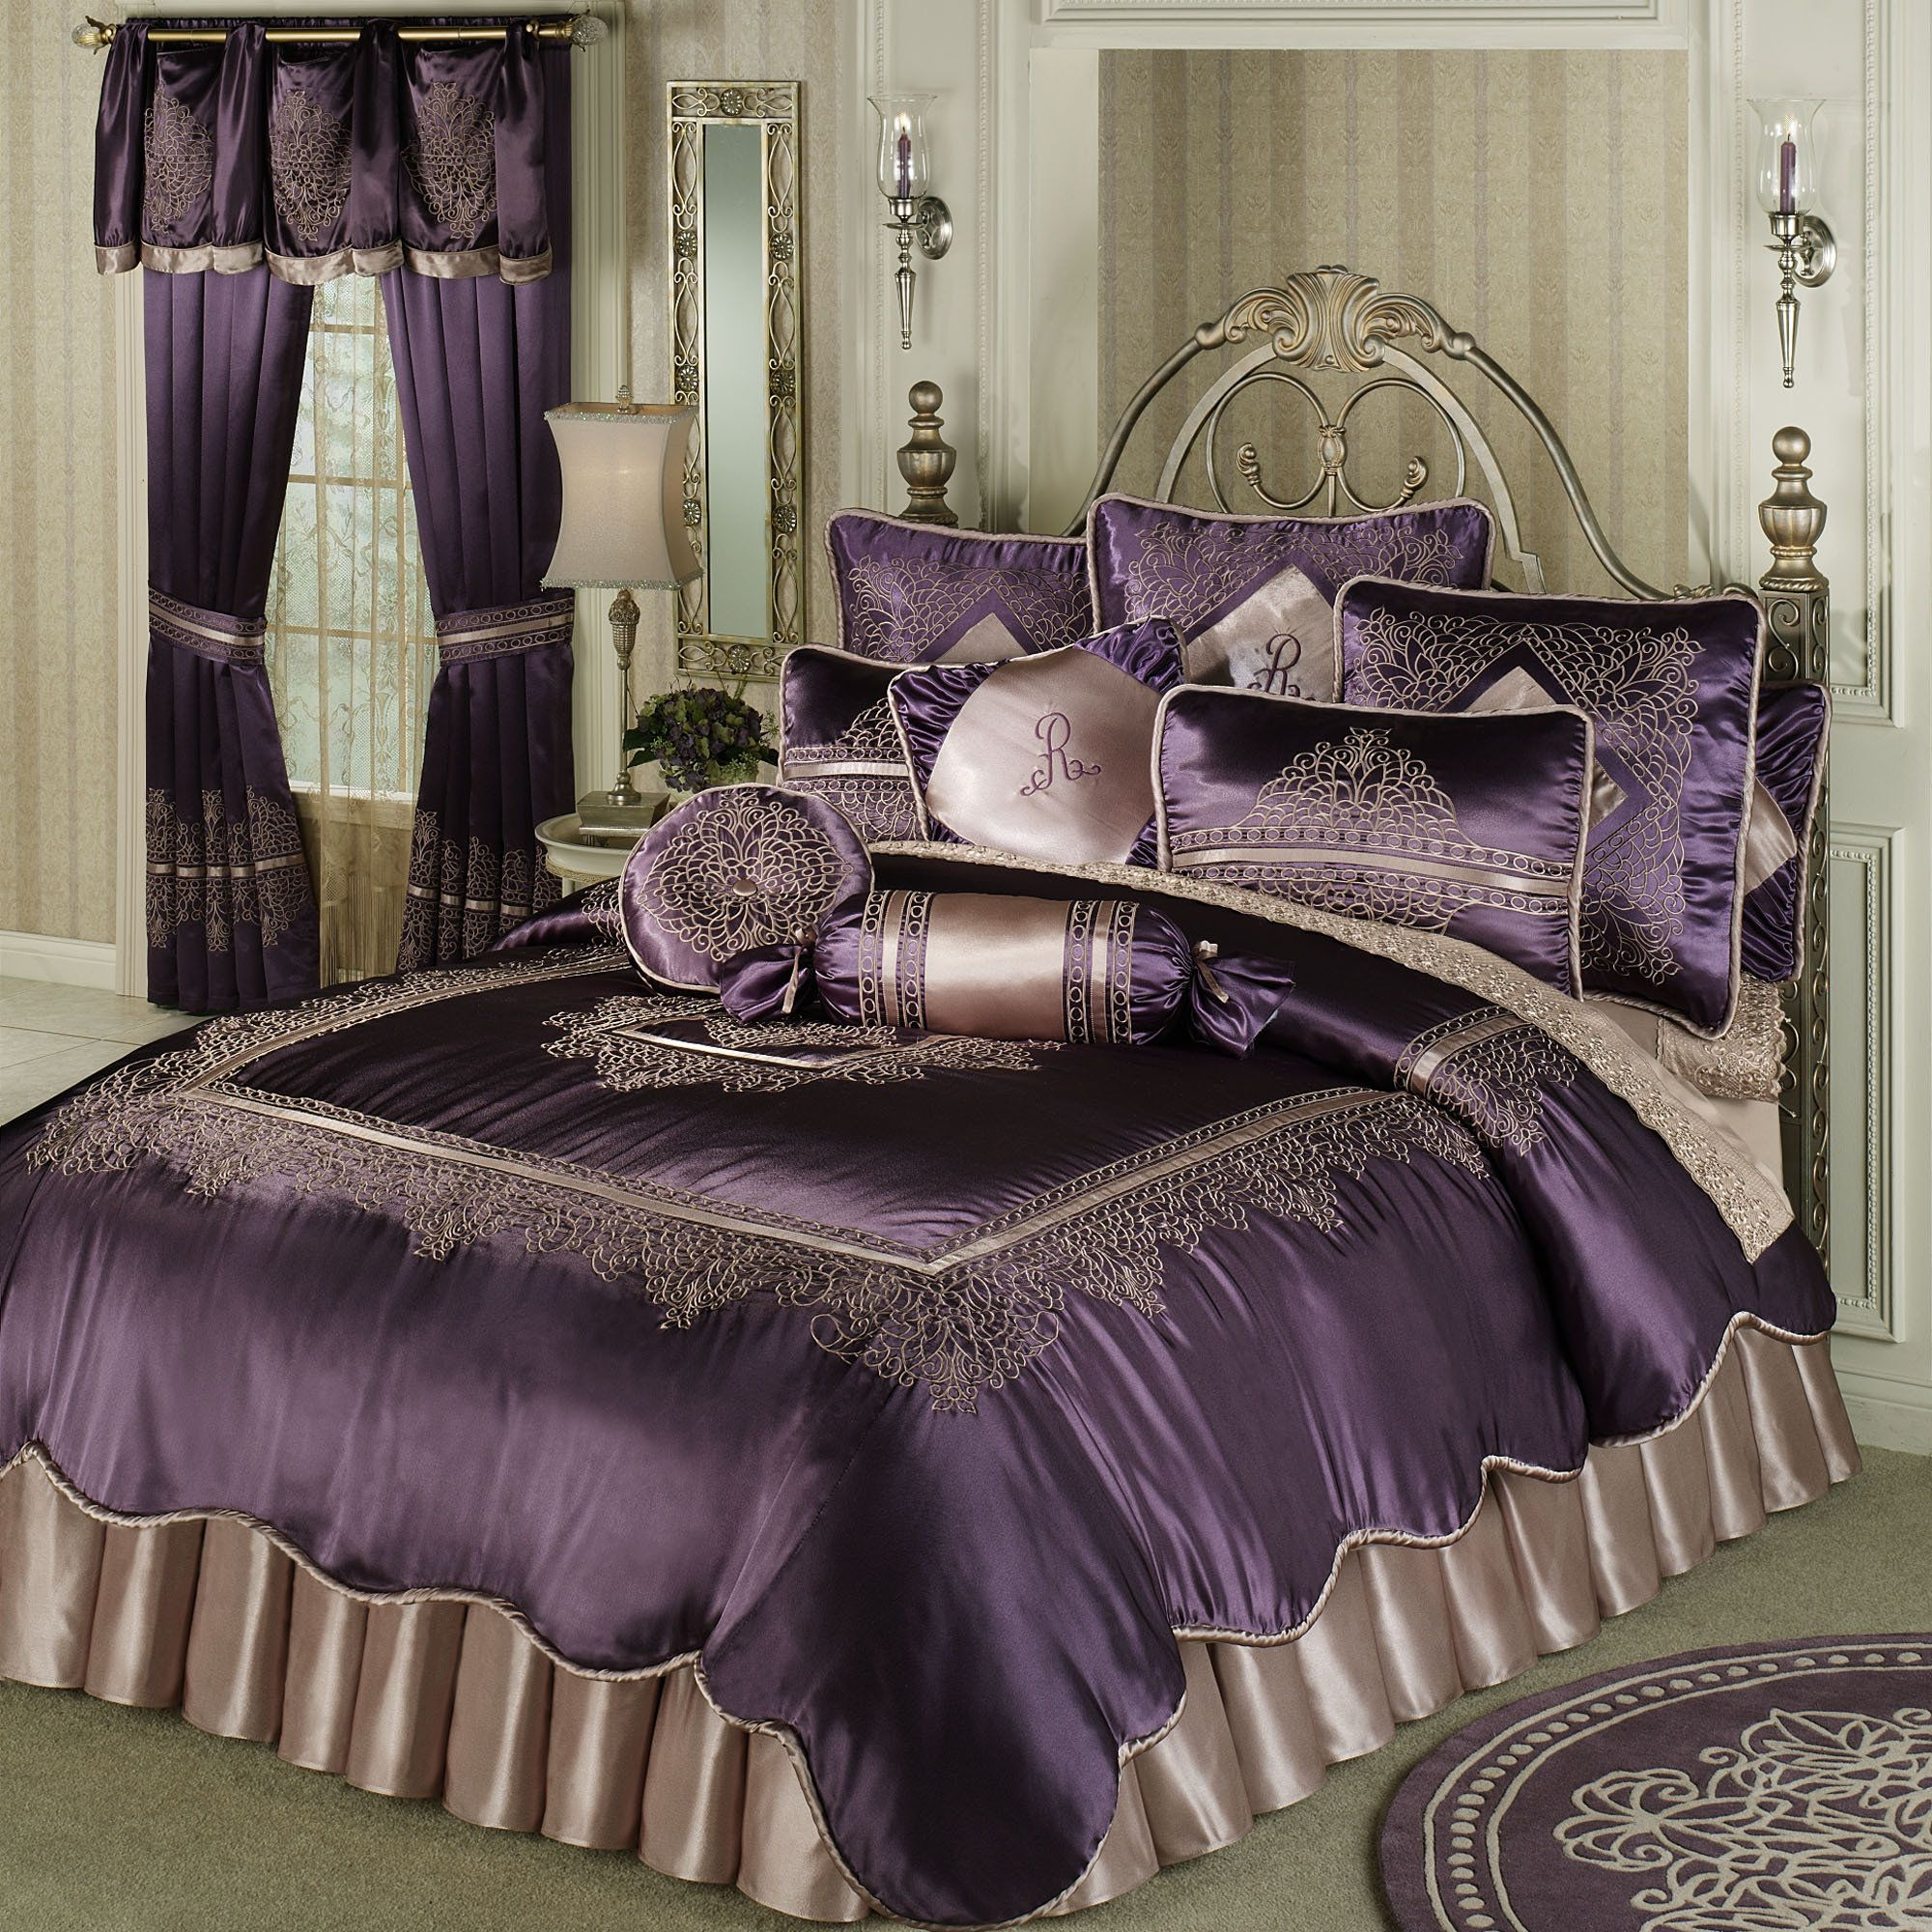 I Dream Of Jeannie Theme Bedrooms Moroccan Style Decorating